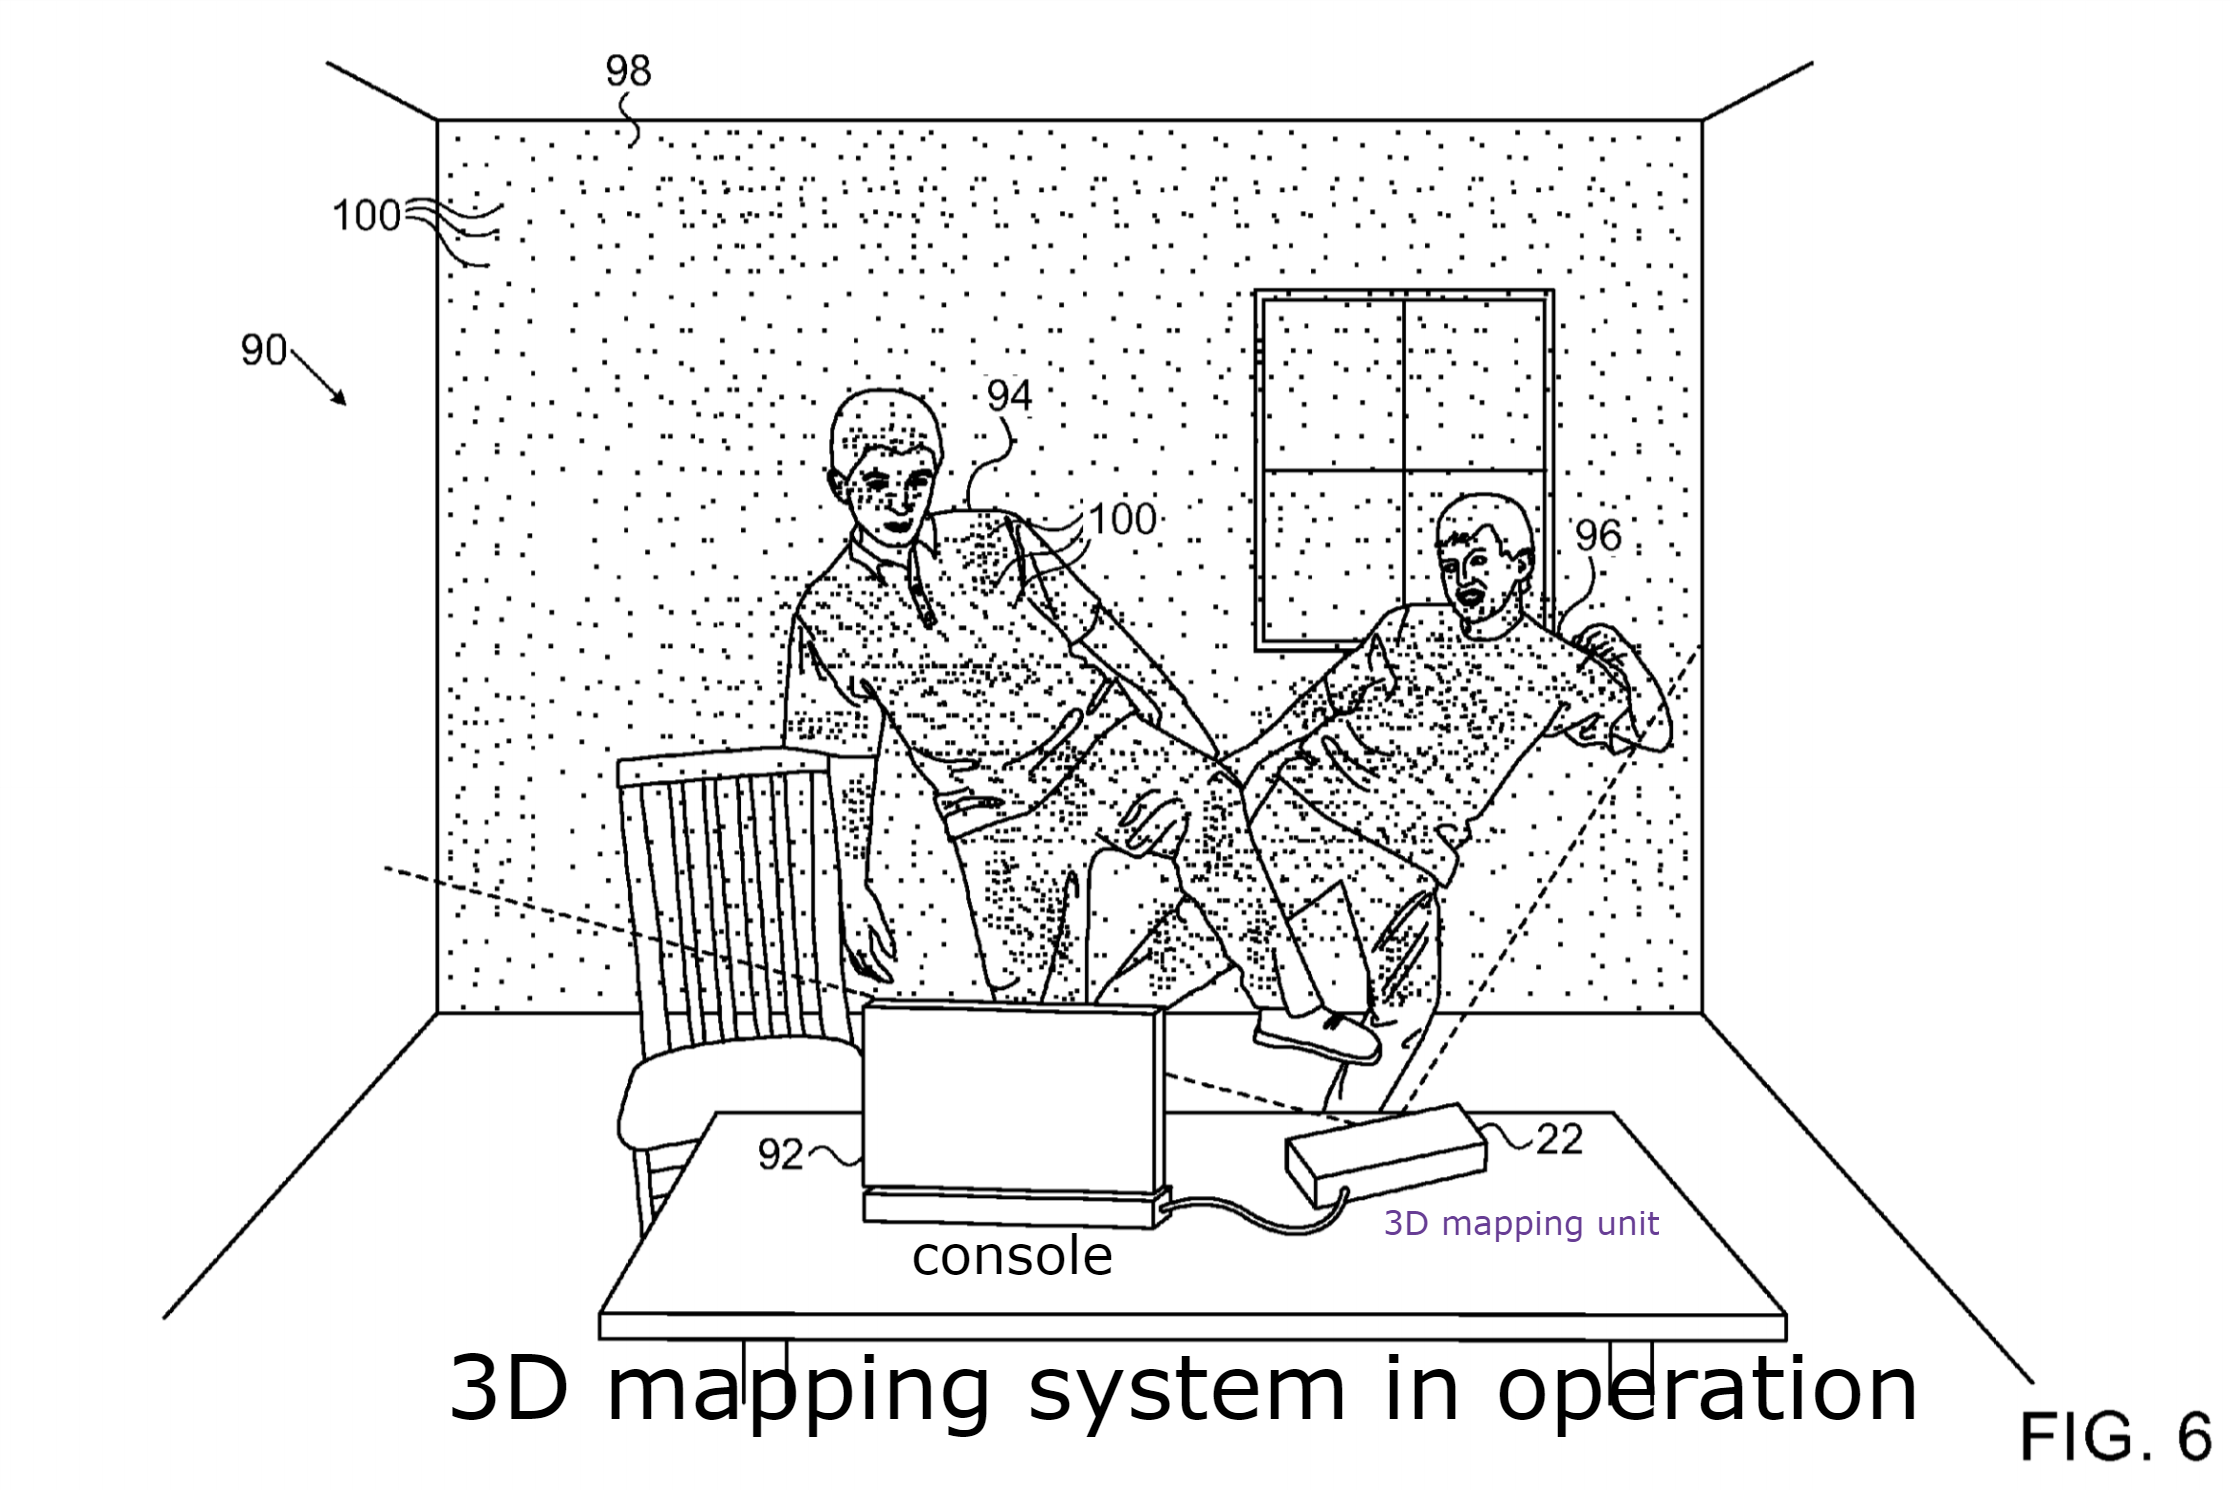 Room Mapping apple granted patent for 3d mapping system – 3d printing or